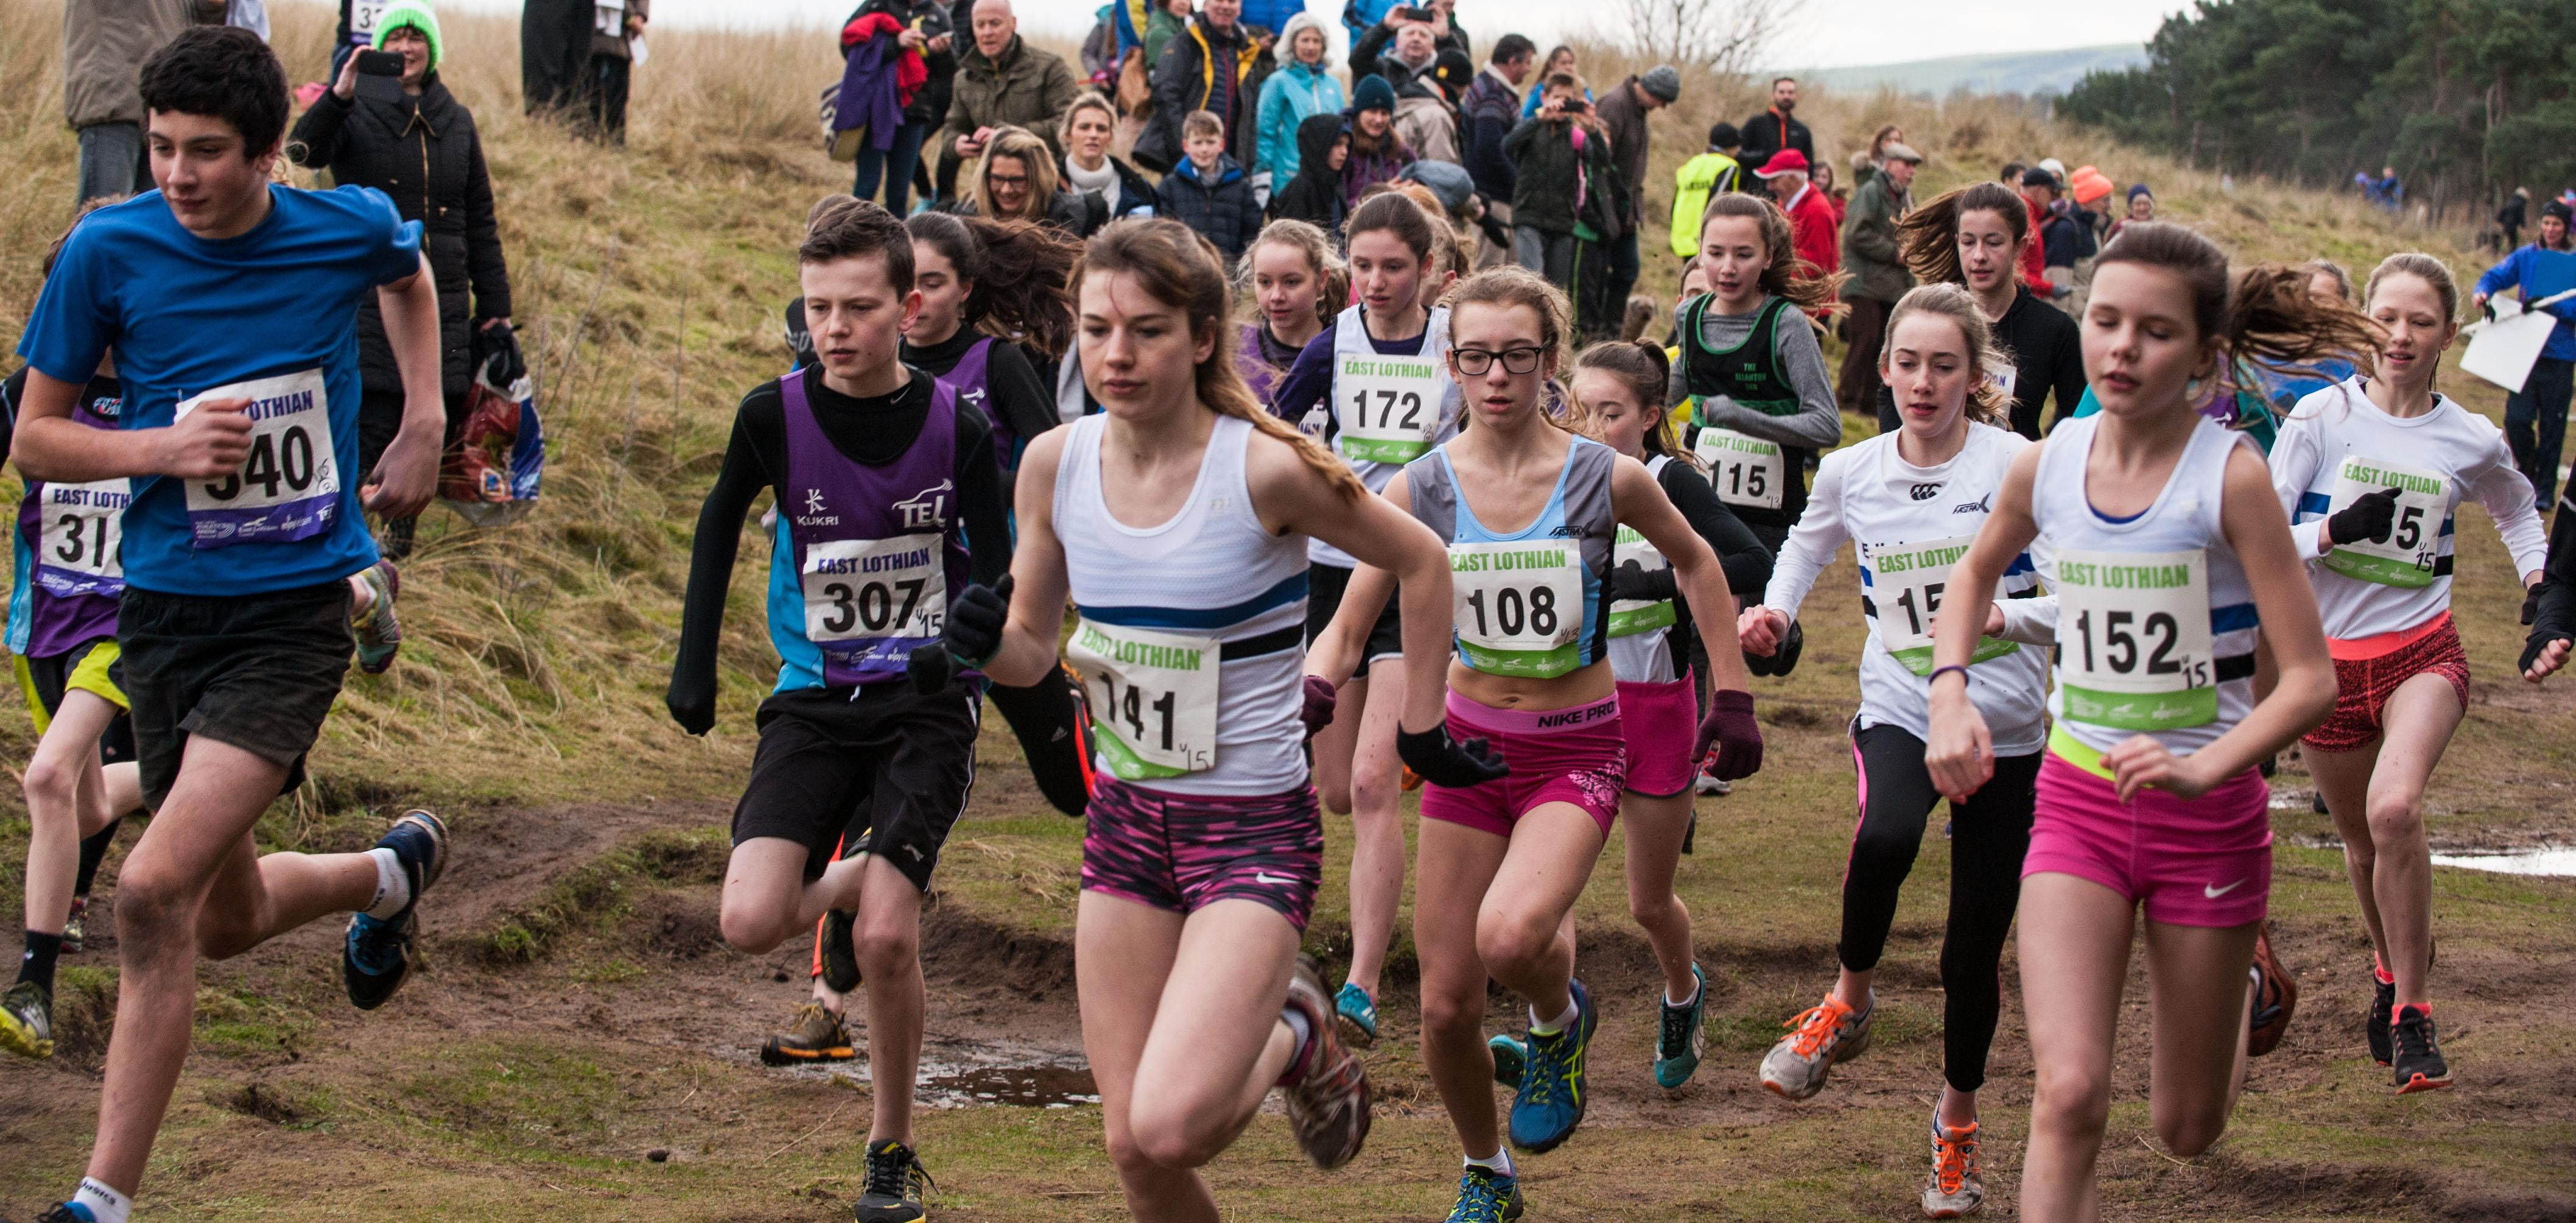 Athletics East Lothian Image 1